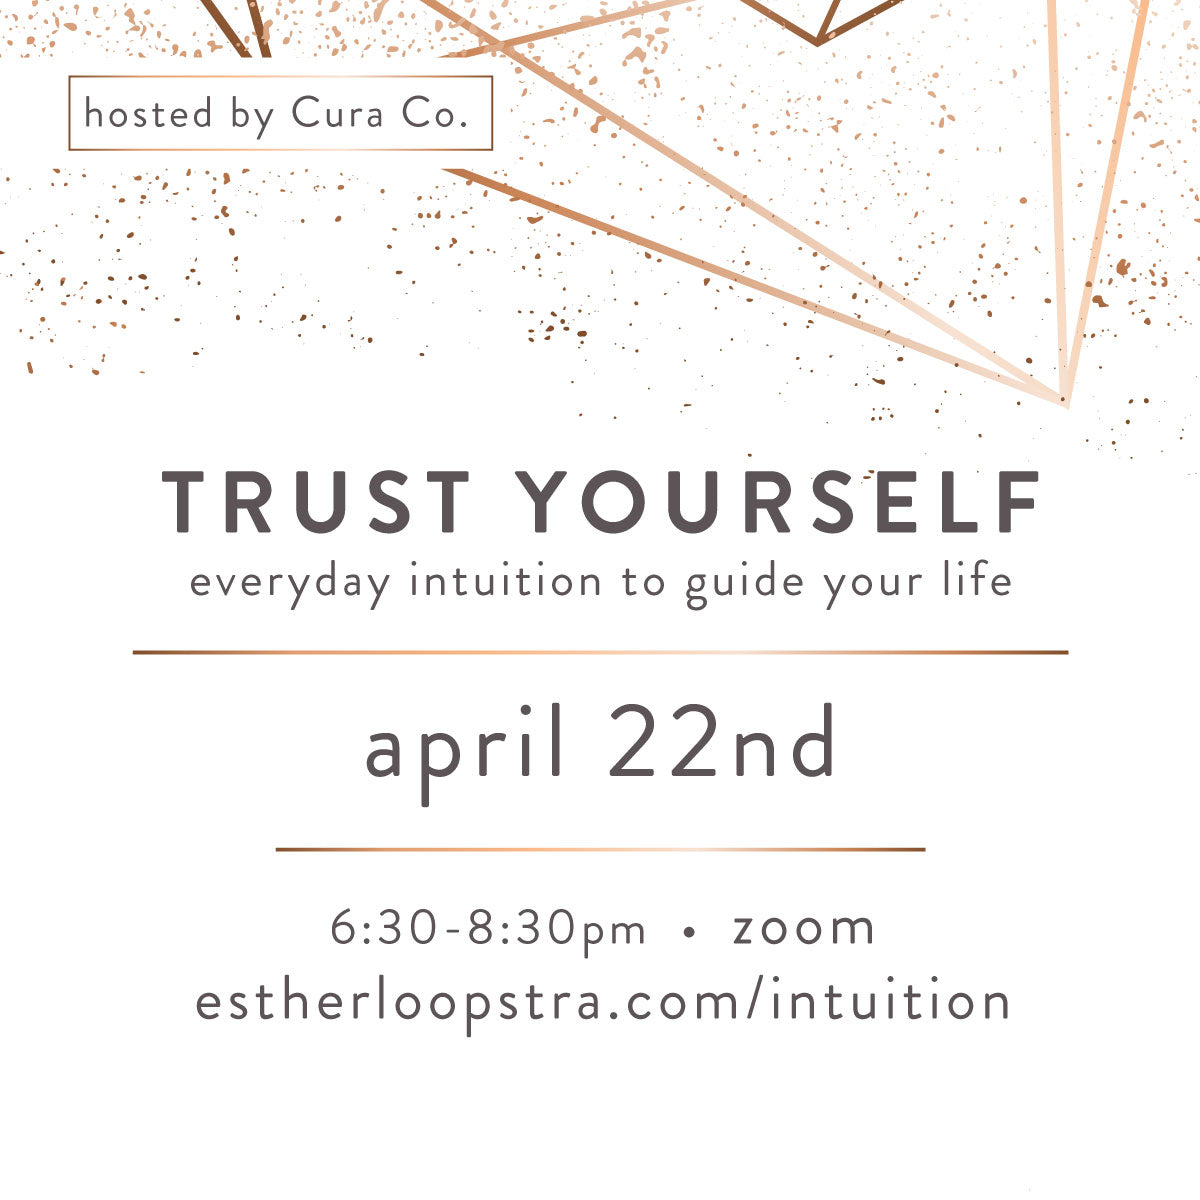 Trust your self everyday intuition to guide your life with Esther Loopstra